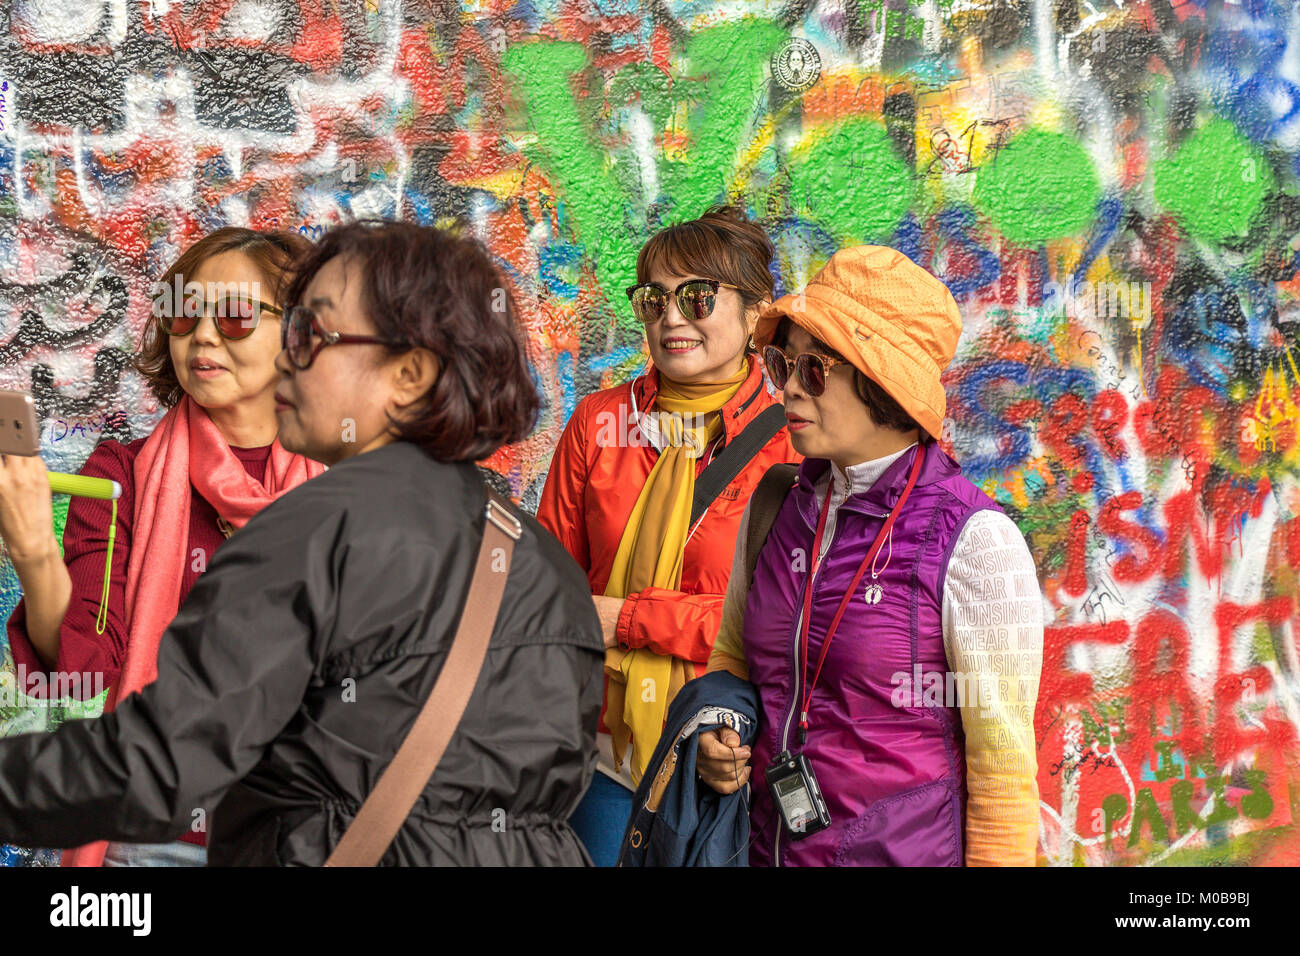 Chinese tourists posing for photographs in front of the Graffiti covered  John Lennon Wall in Prague . - Stock Image